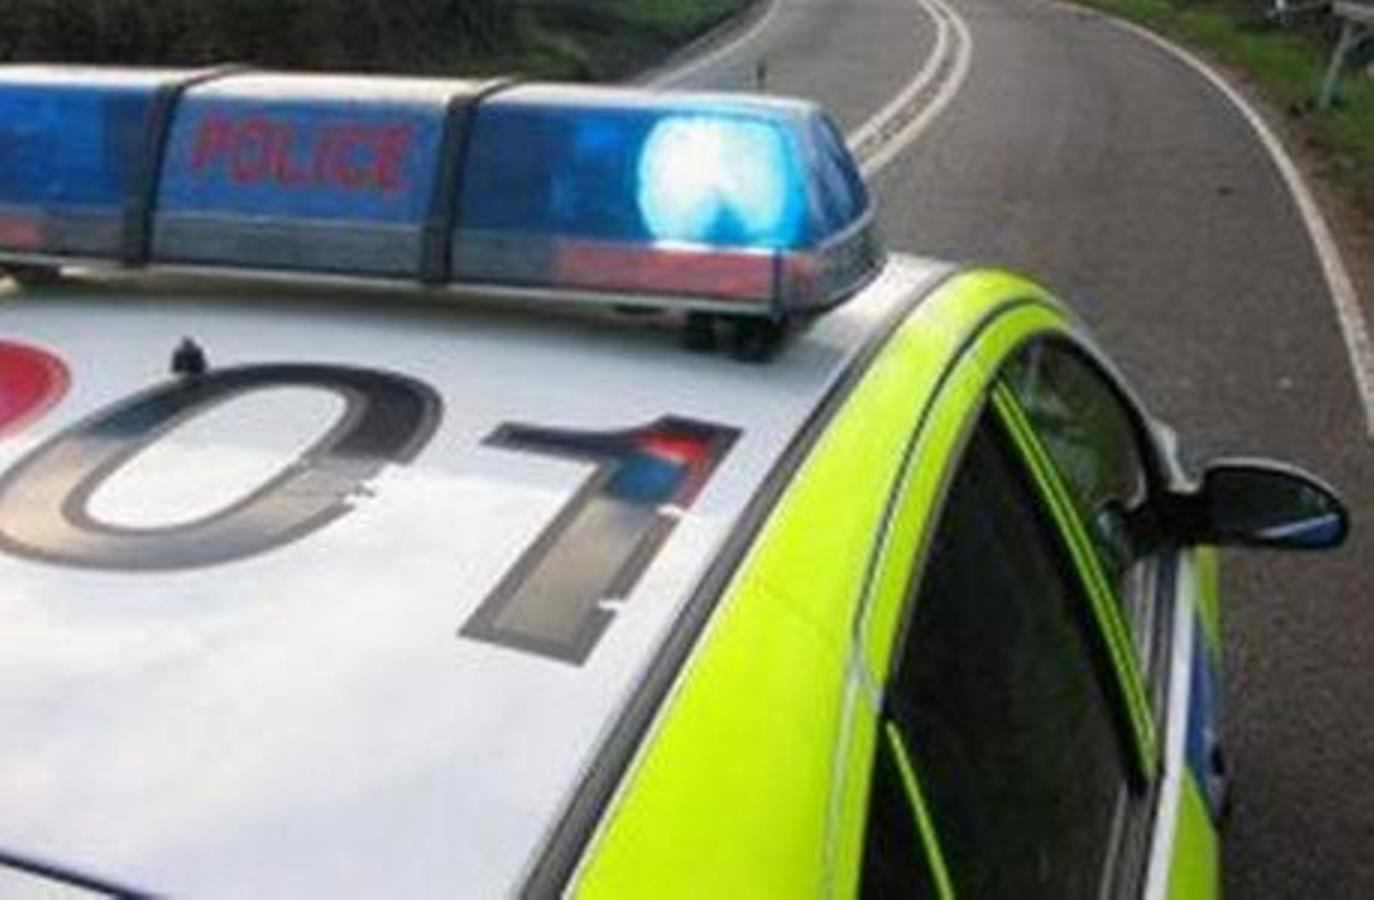 Debris in road after M65 crash